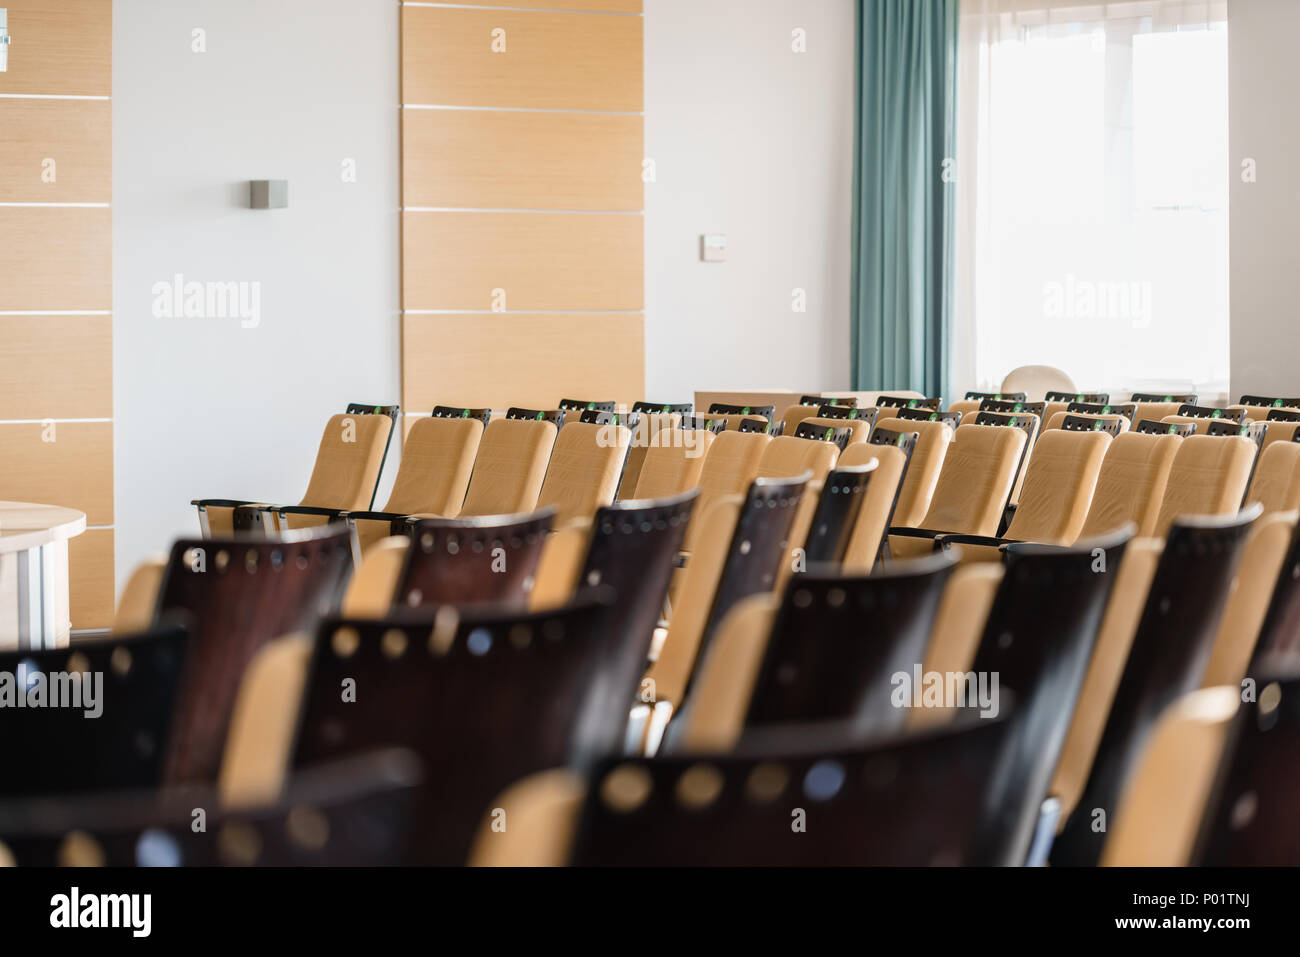 Seminar presentation. Empty conference room, lots of empty seats. Auditorium for workshops and seminars - Stock Image